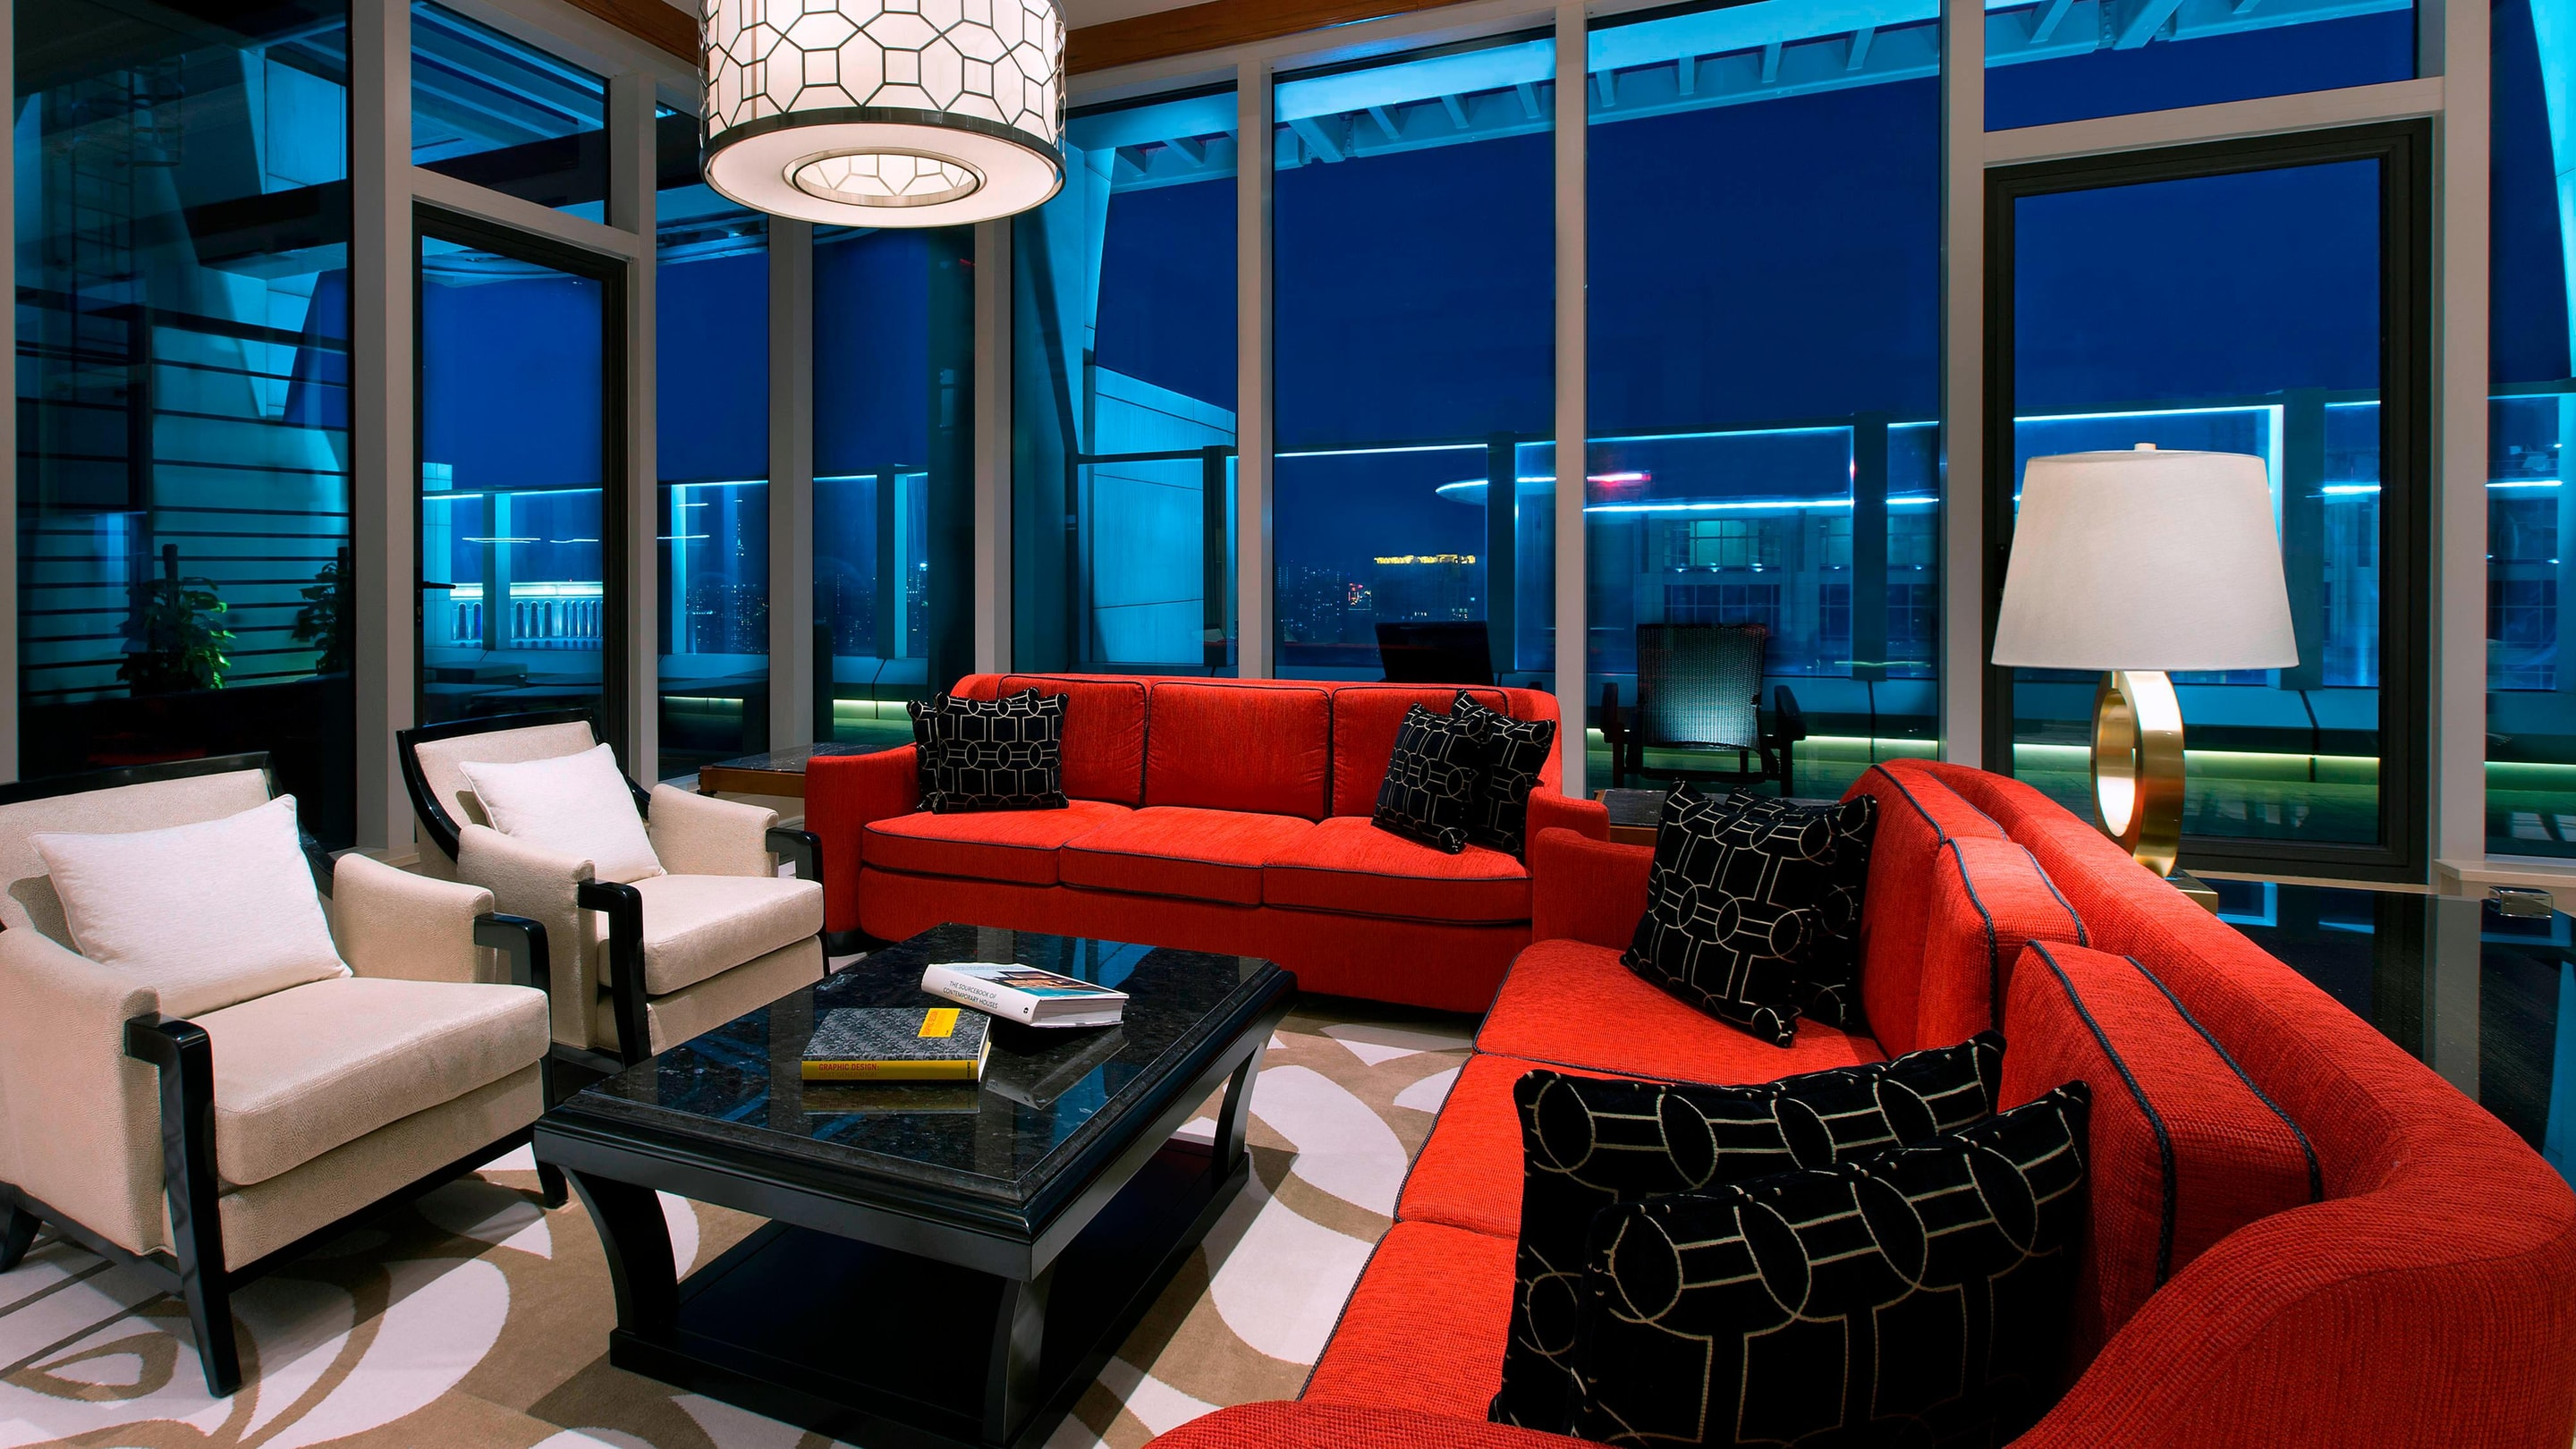 Terrace suite living area with seating and red couches